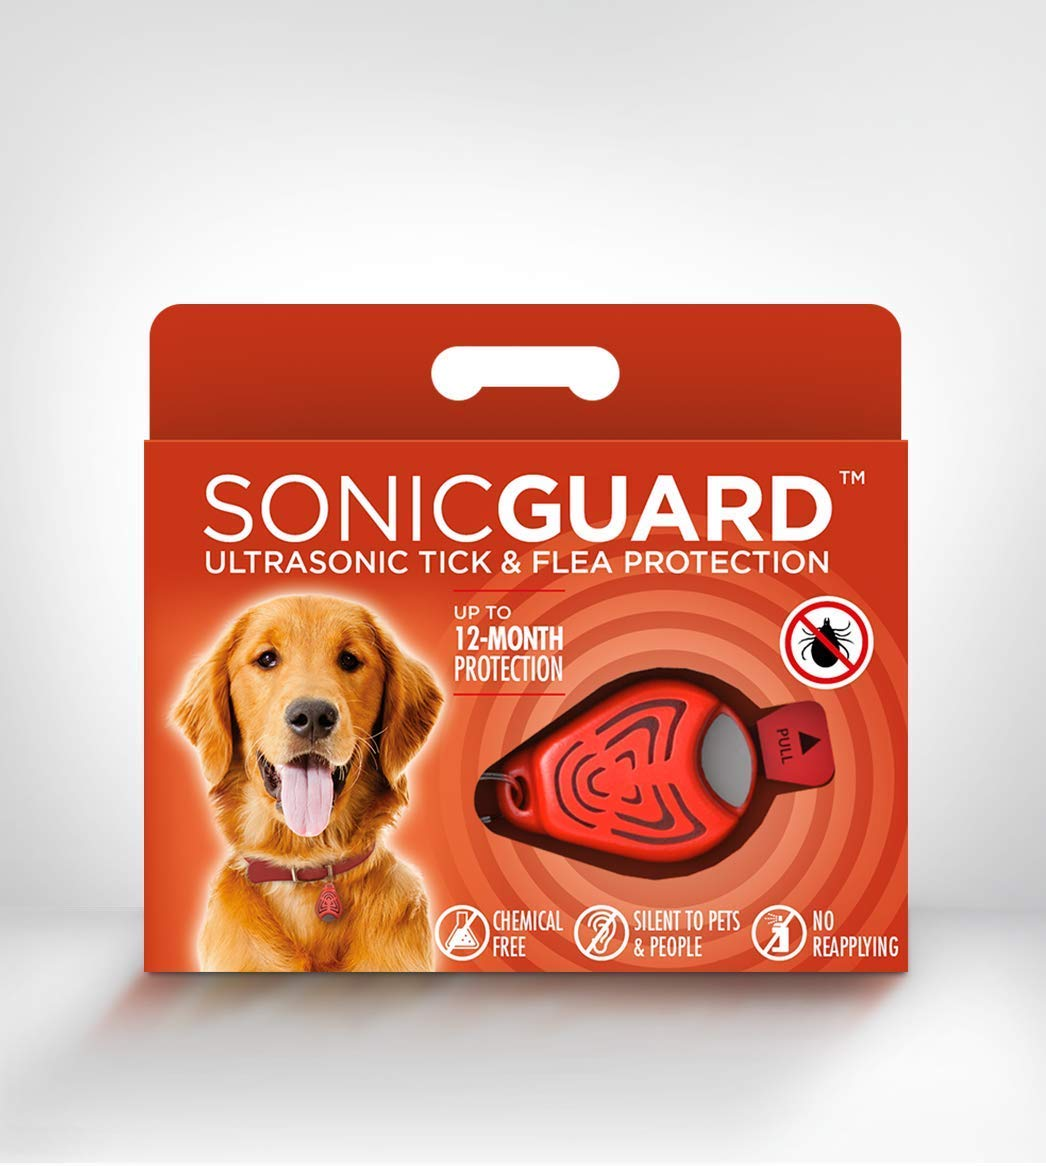 SonicGuard Classic Pet Chemical-Free Tick and Flea Repeller for all sizes of Dogs